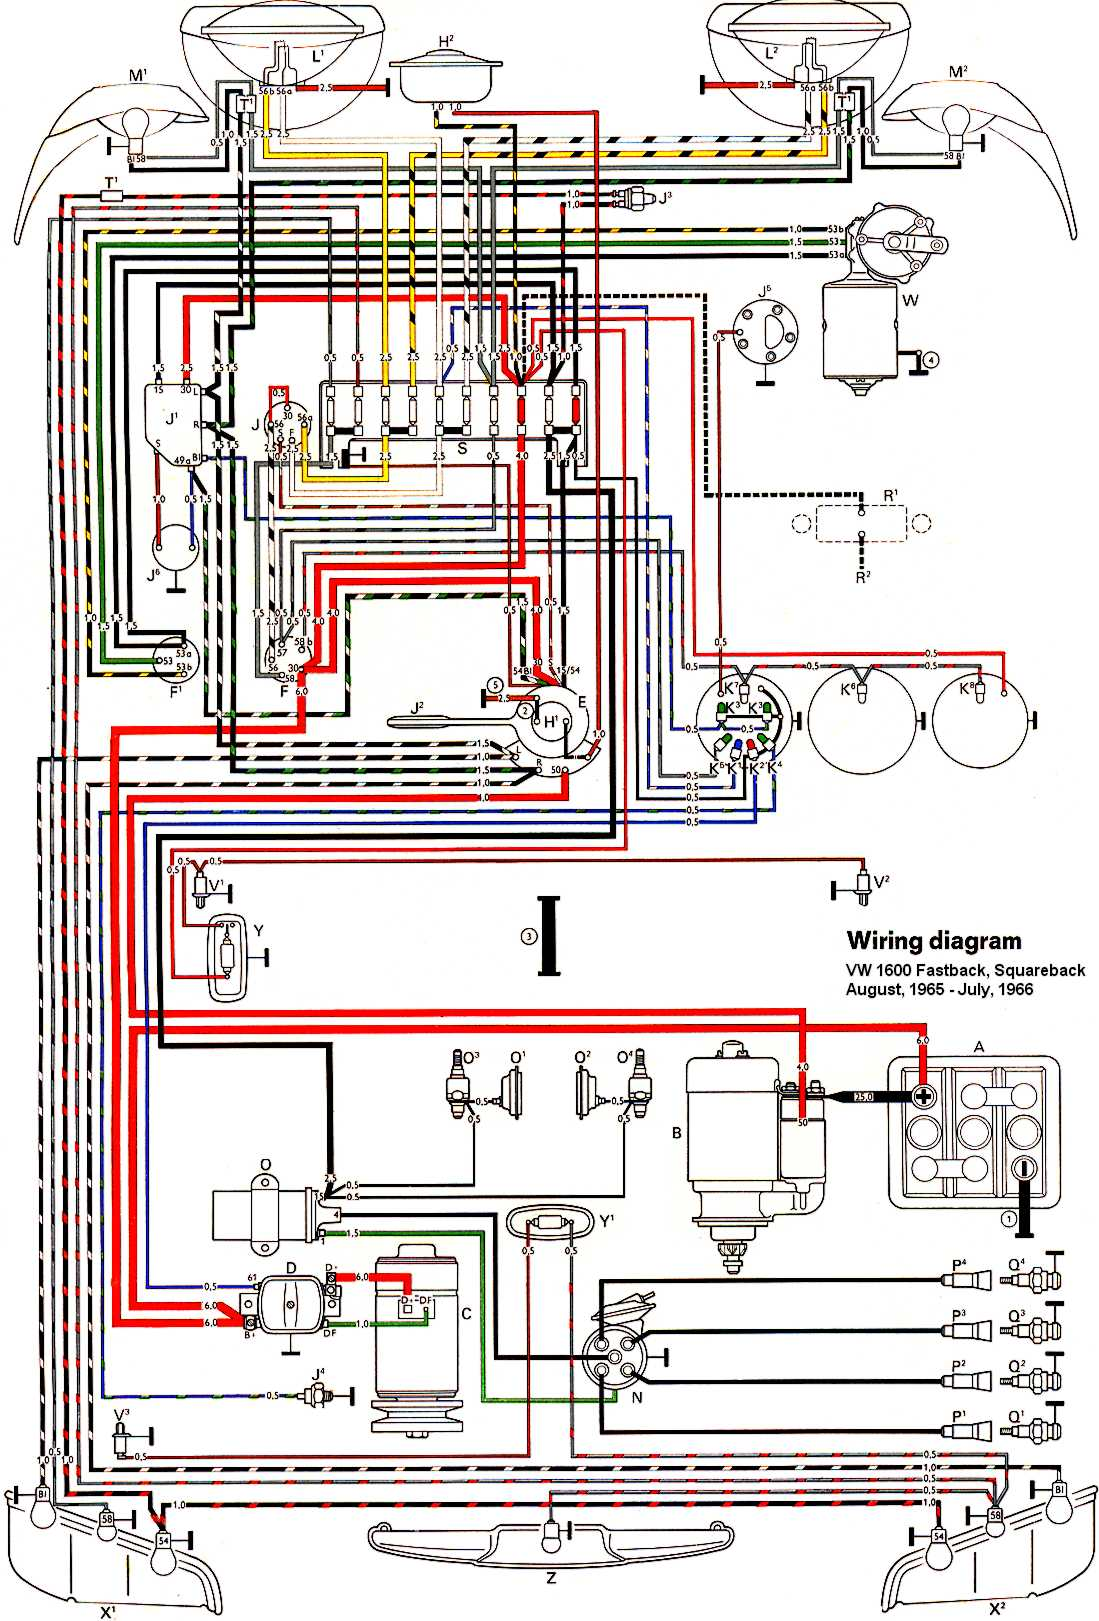 thesamba com type 3 wiring diagrams vw ignition wiring diagram vw type 3 wiring diagram #5